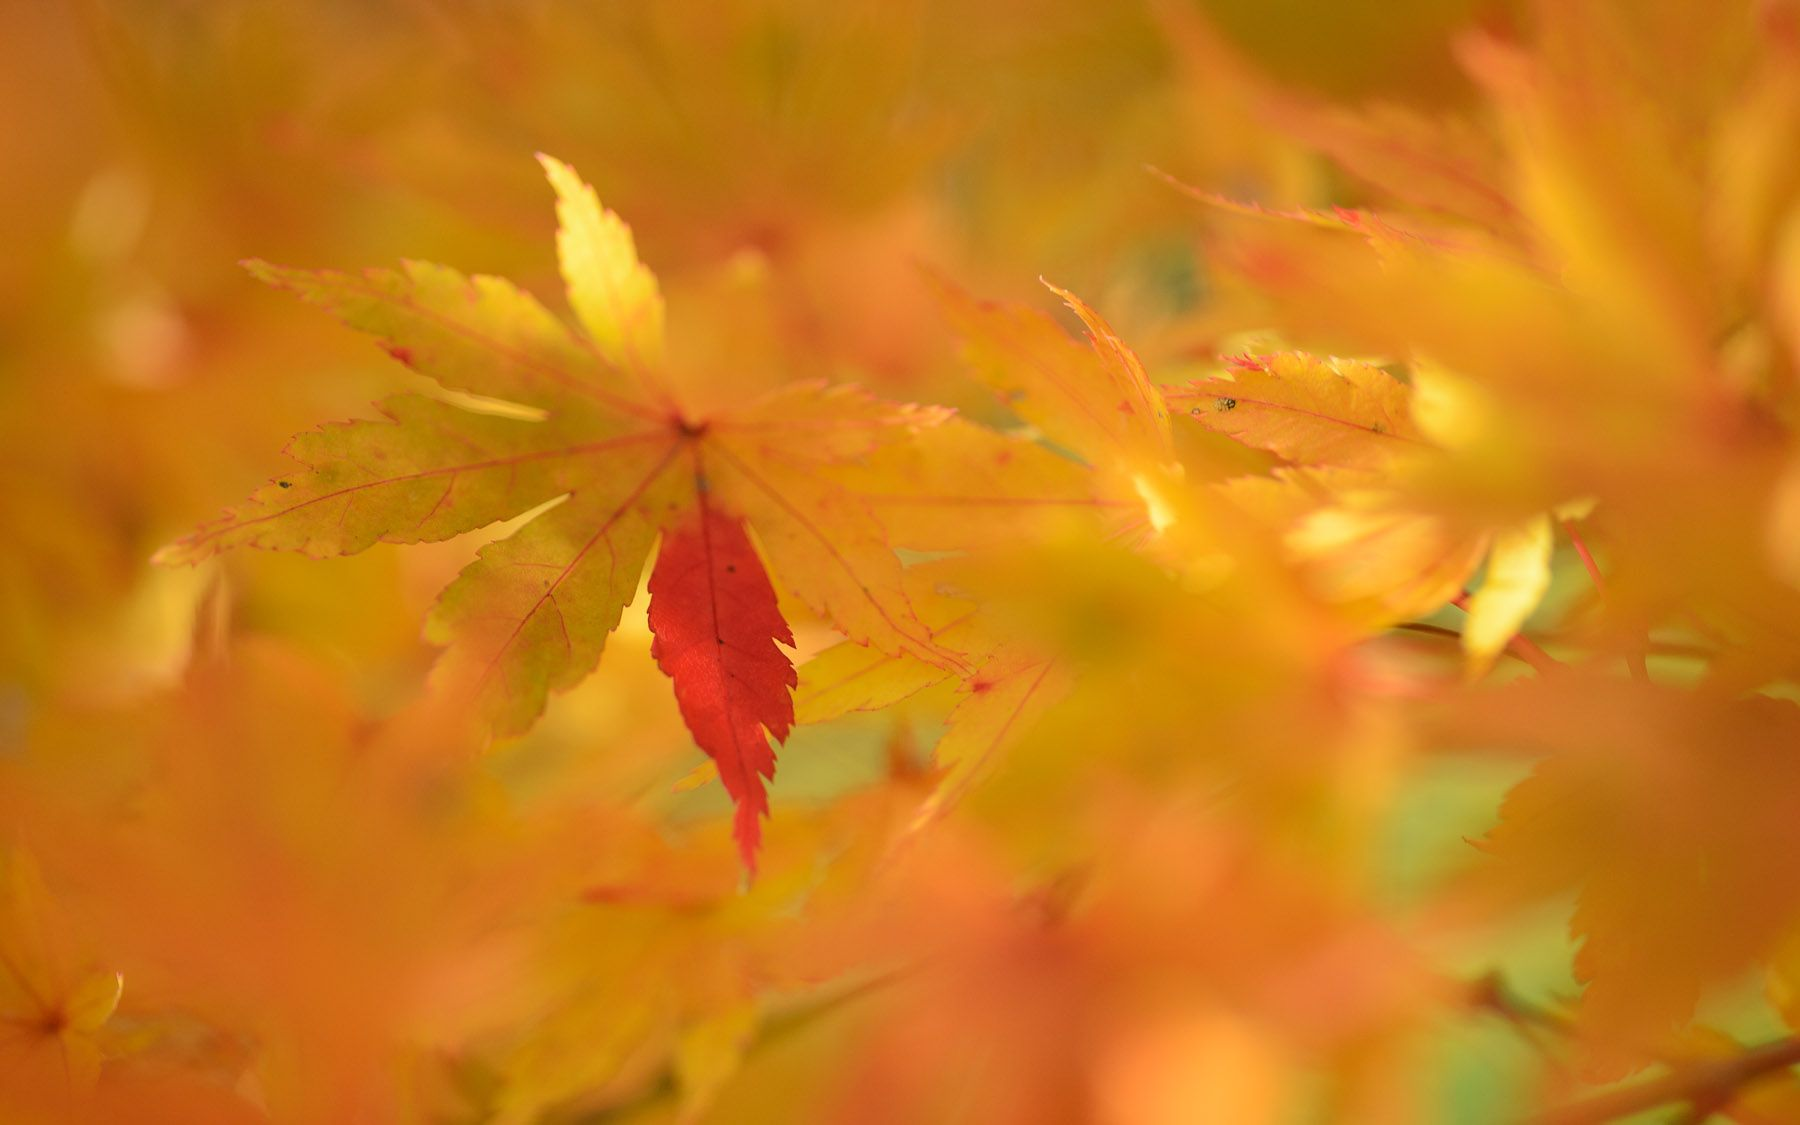 Nature Wallpaper: Fall Color Wallpaper Wide with High Resolution.